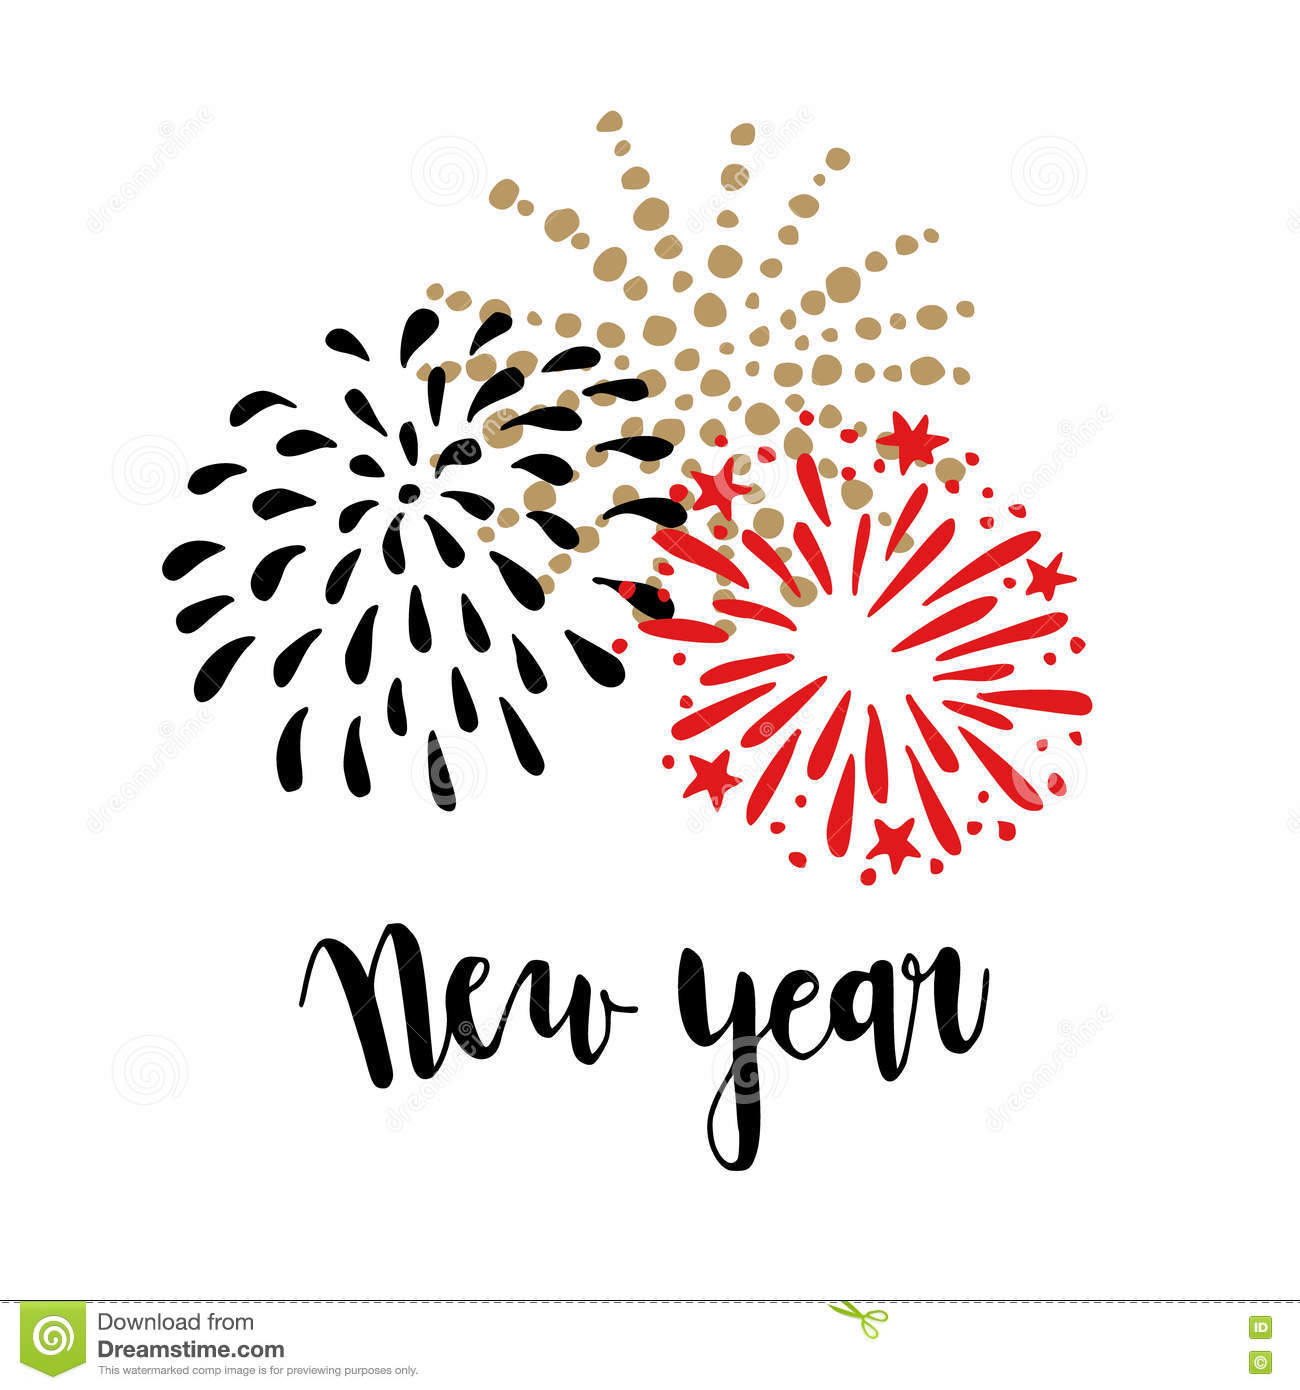 Happy New Year greeting card, invitation. Brush lettering text with doodle hand drawn fireworks. Festive party background.Vector